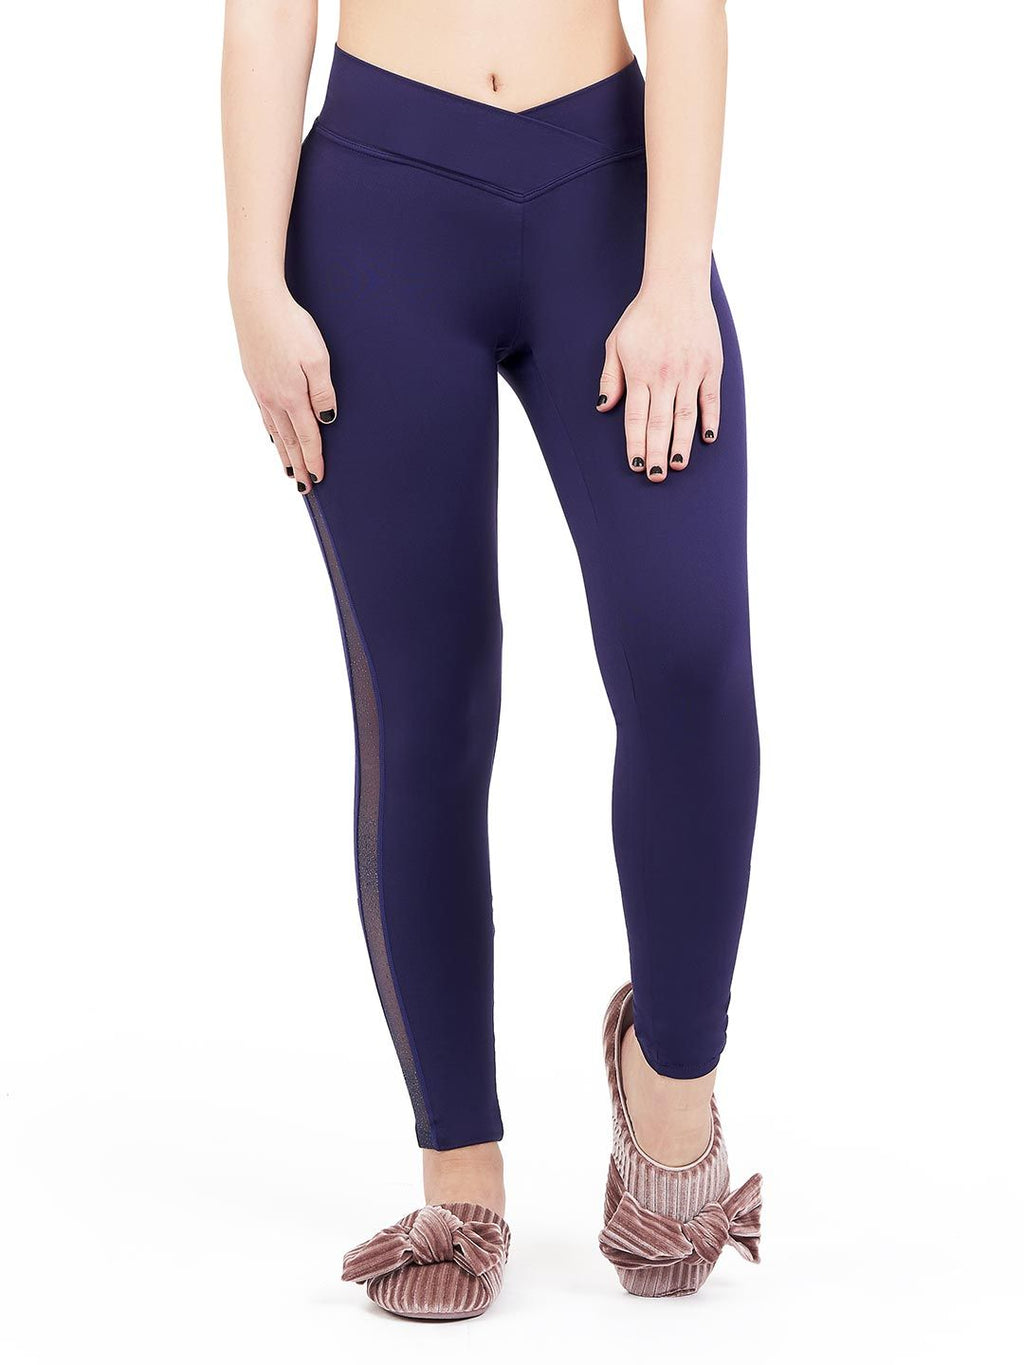 Capezio Women's Cosmos Cross Front Leggings